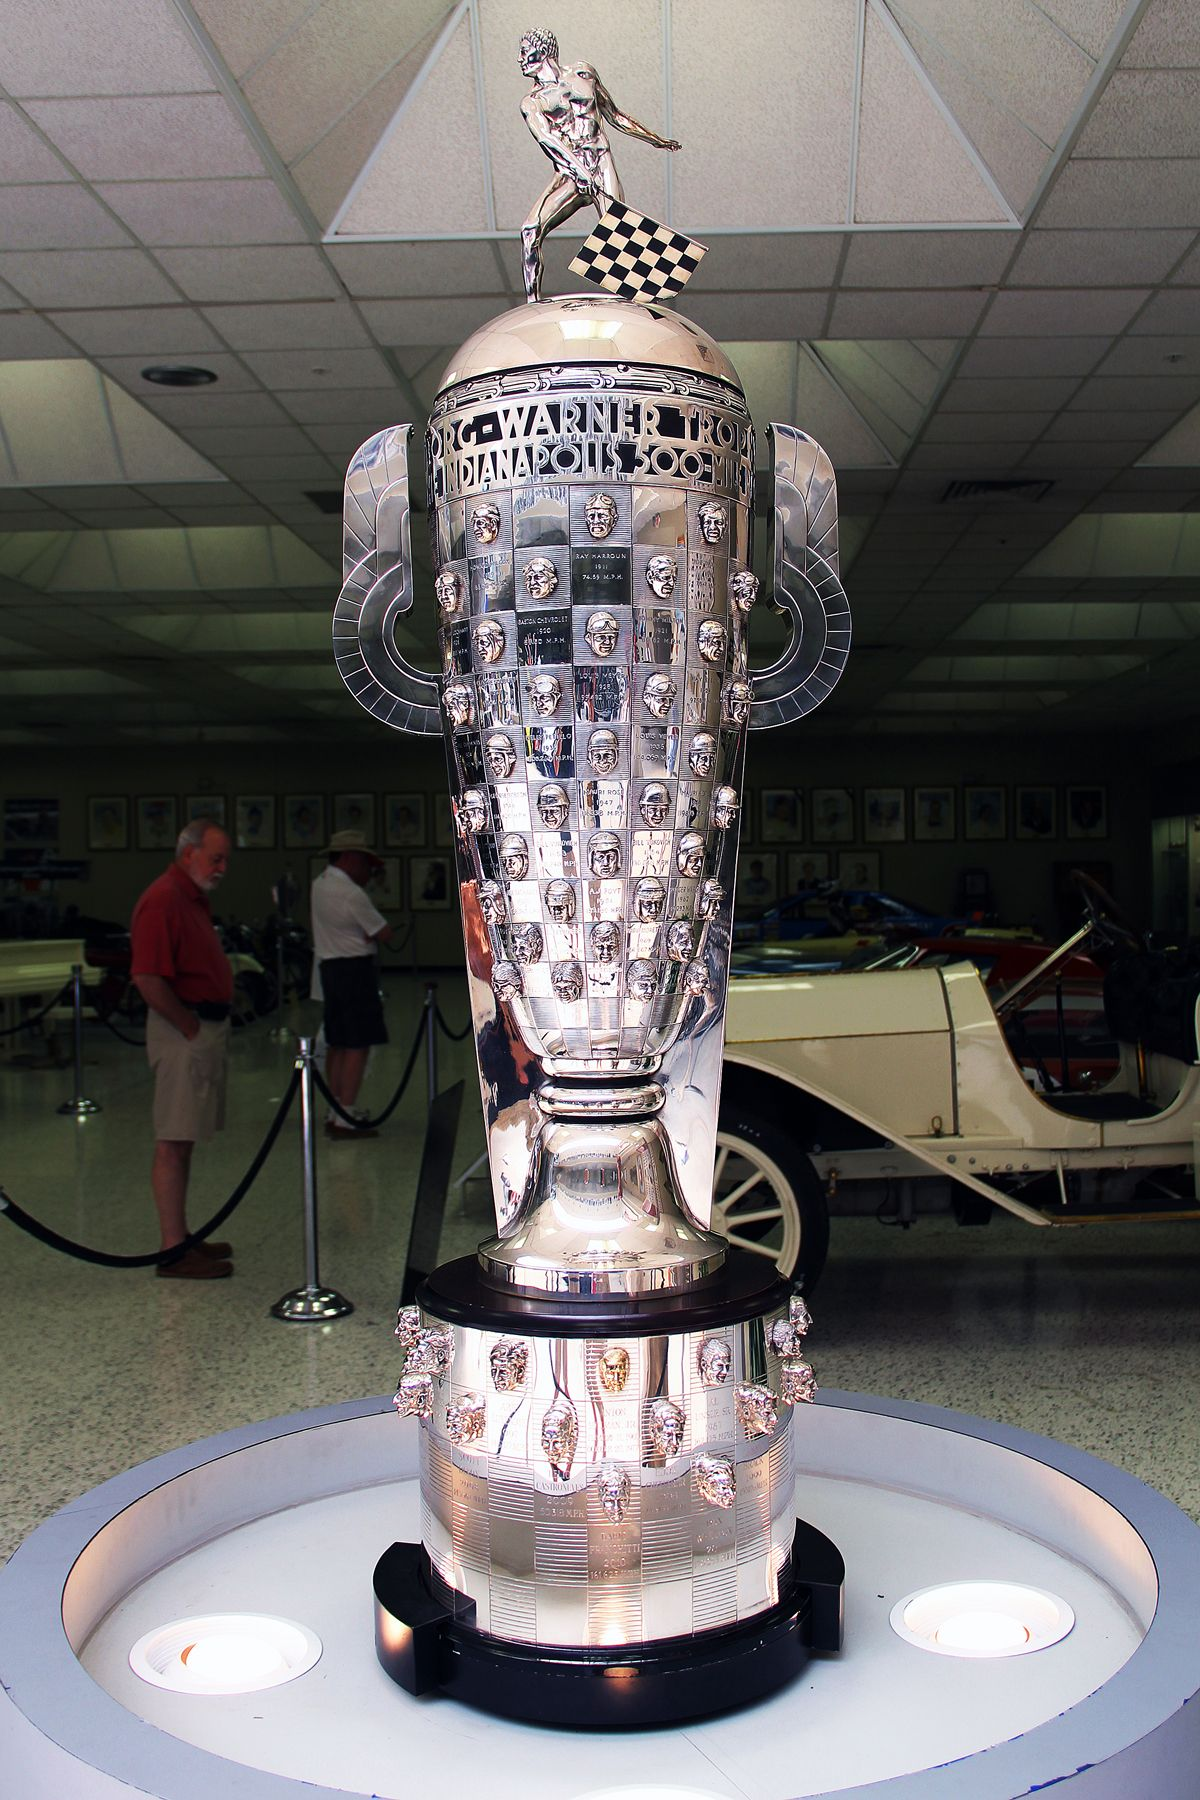 Borg Warner Trophy To Get Your Likeness Added To This Trophy All You Have To Do Is Lead One Lap At The End Of The In Indy Cars